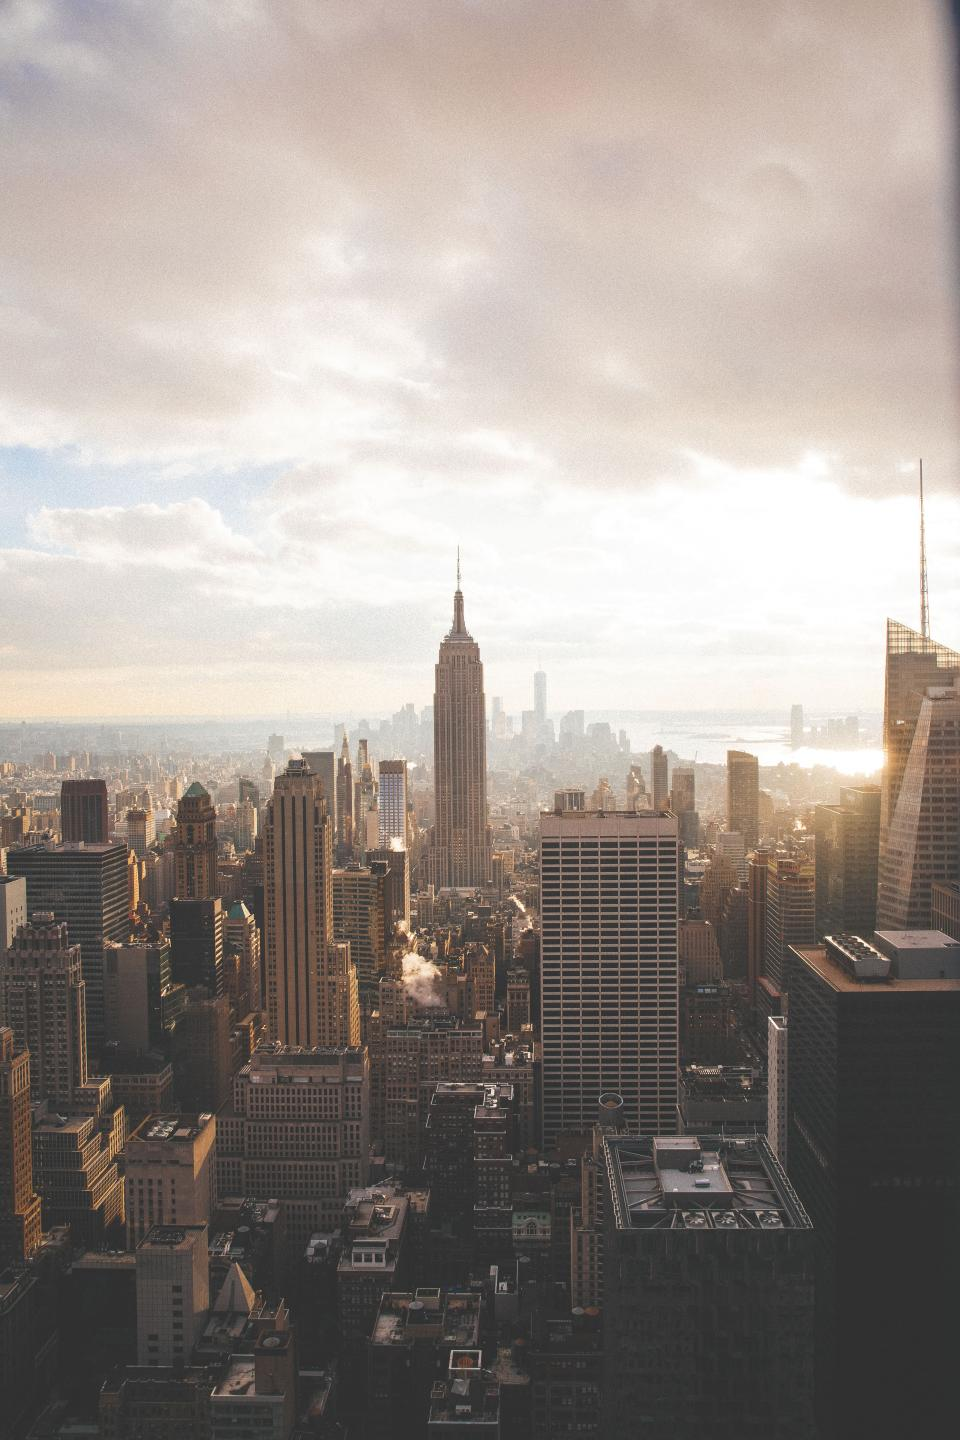 New York city NYC downtown buildings towers high rises architecture aerial view sky clouds